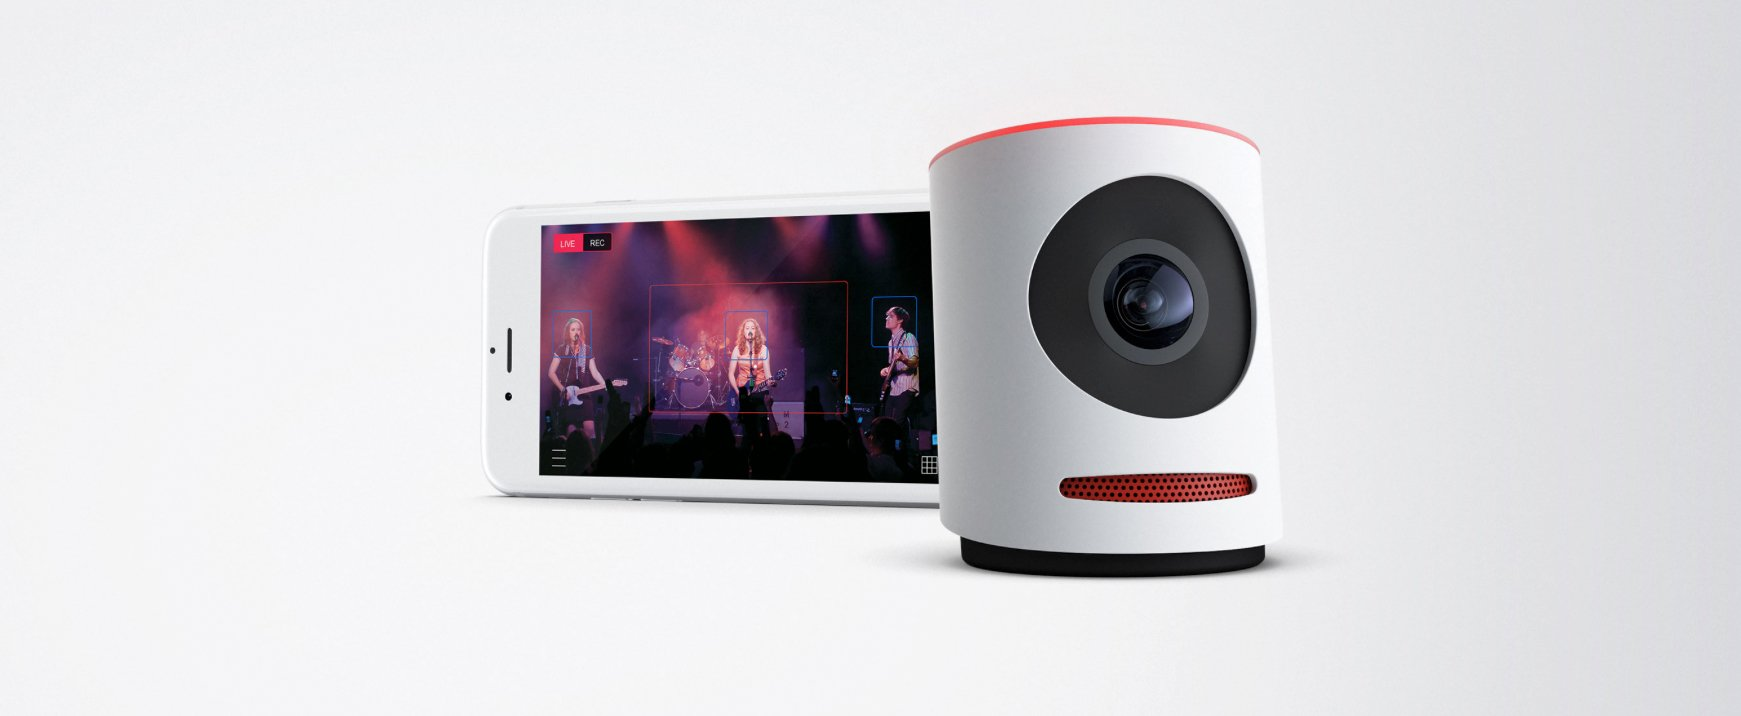 Livestream's new Movi camera allows users to edit video while filming live